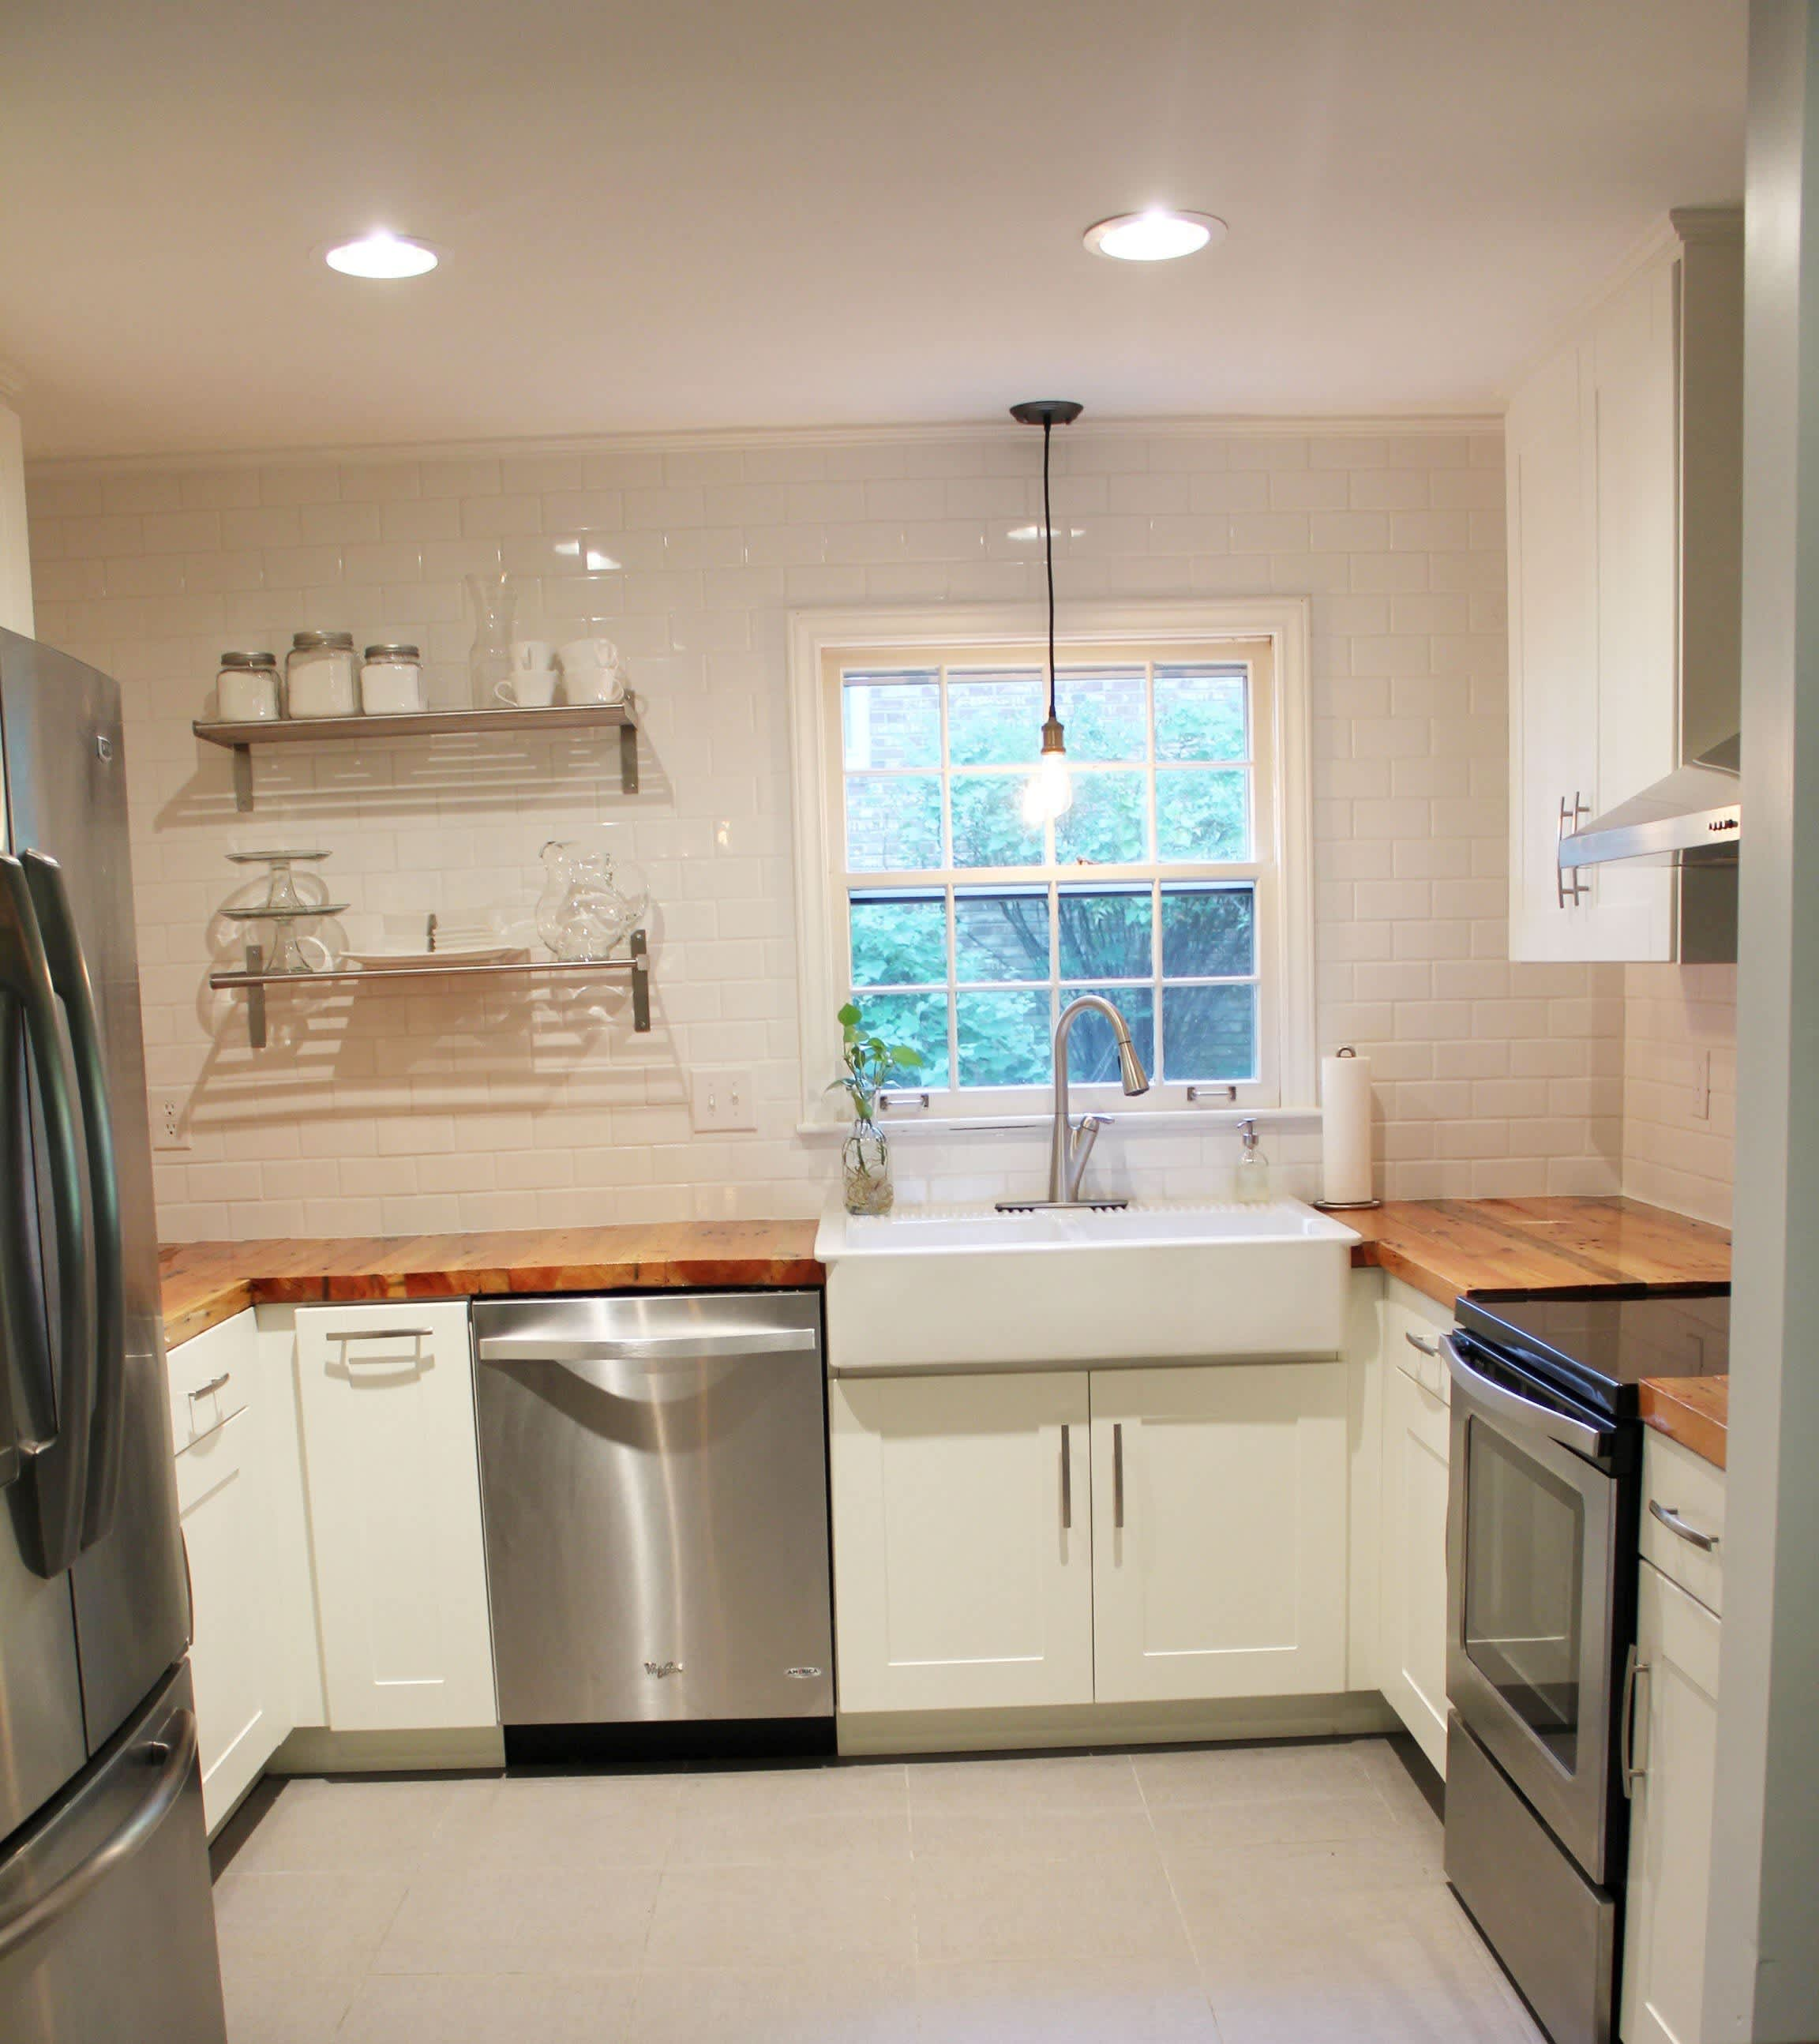 Kitchen Transformations: Before & After: A Year Of Kitchen Transformations